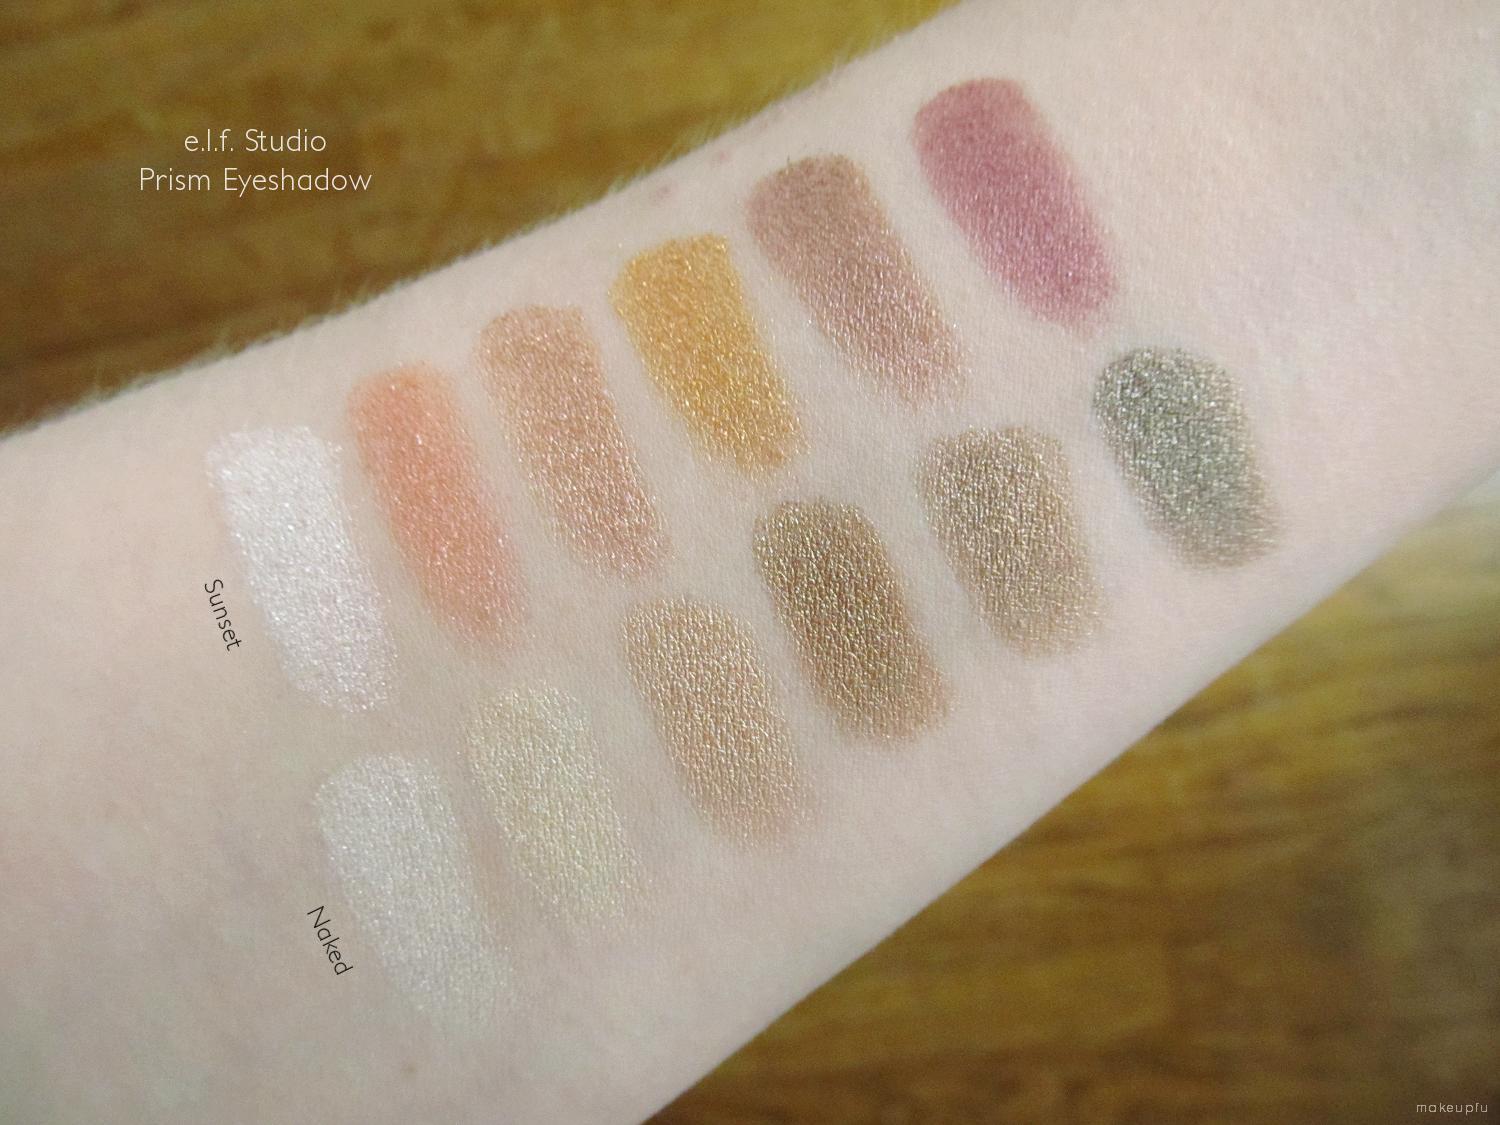 Prism Eyeshadow Palette - Naked by e.l.f. #17